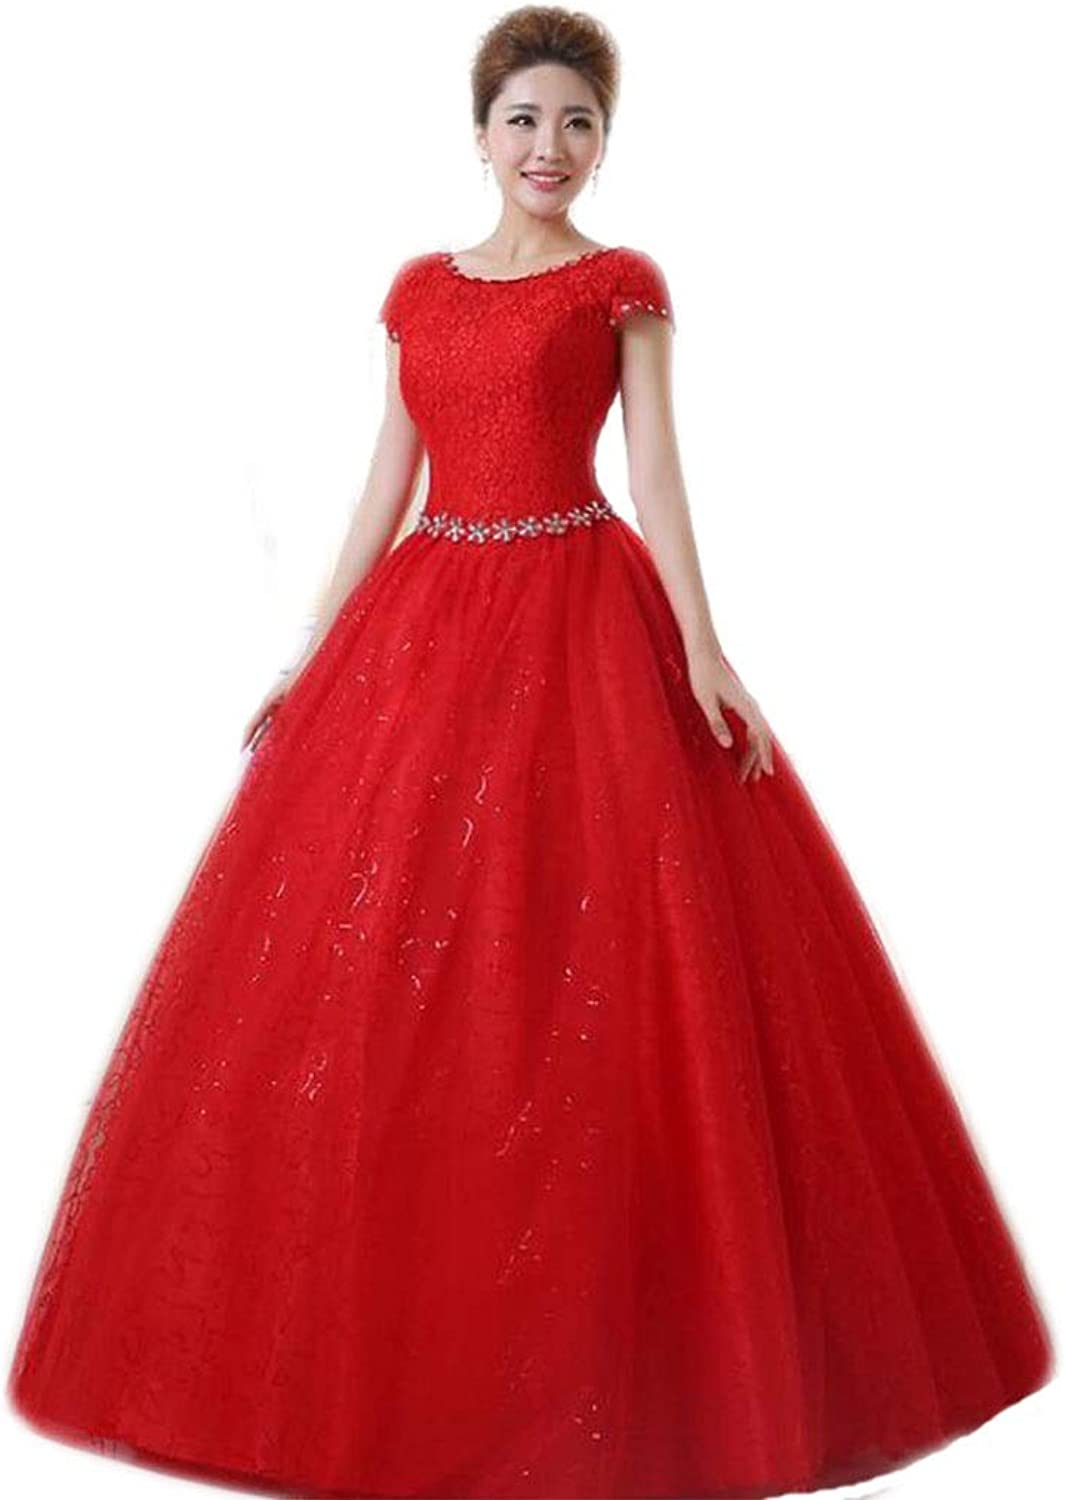 Bride Wedding Wedding Dress Spring and Summer Shoulder Lace Large Size Slim Slim Pregnant Women Qi Lace Thin Dress Host Dress (color   Red, Size   XL)